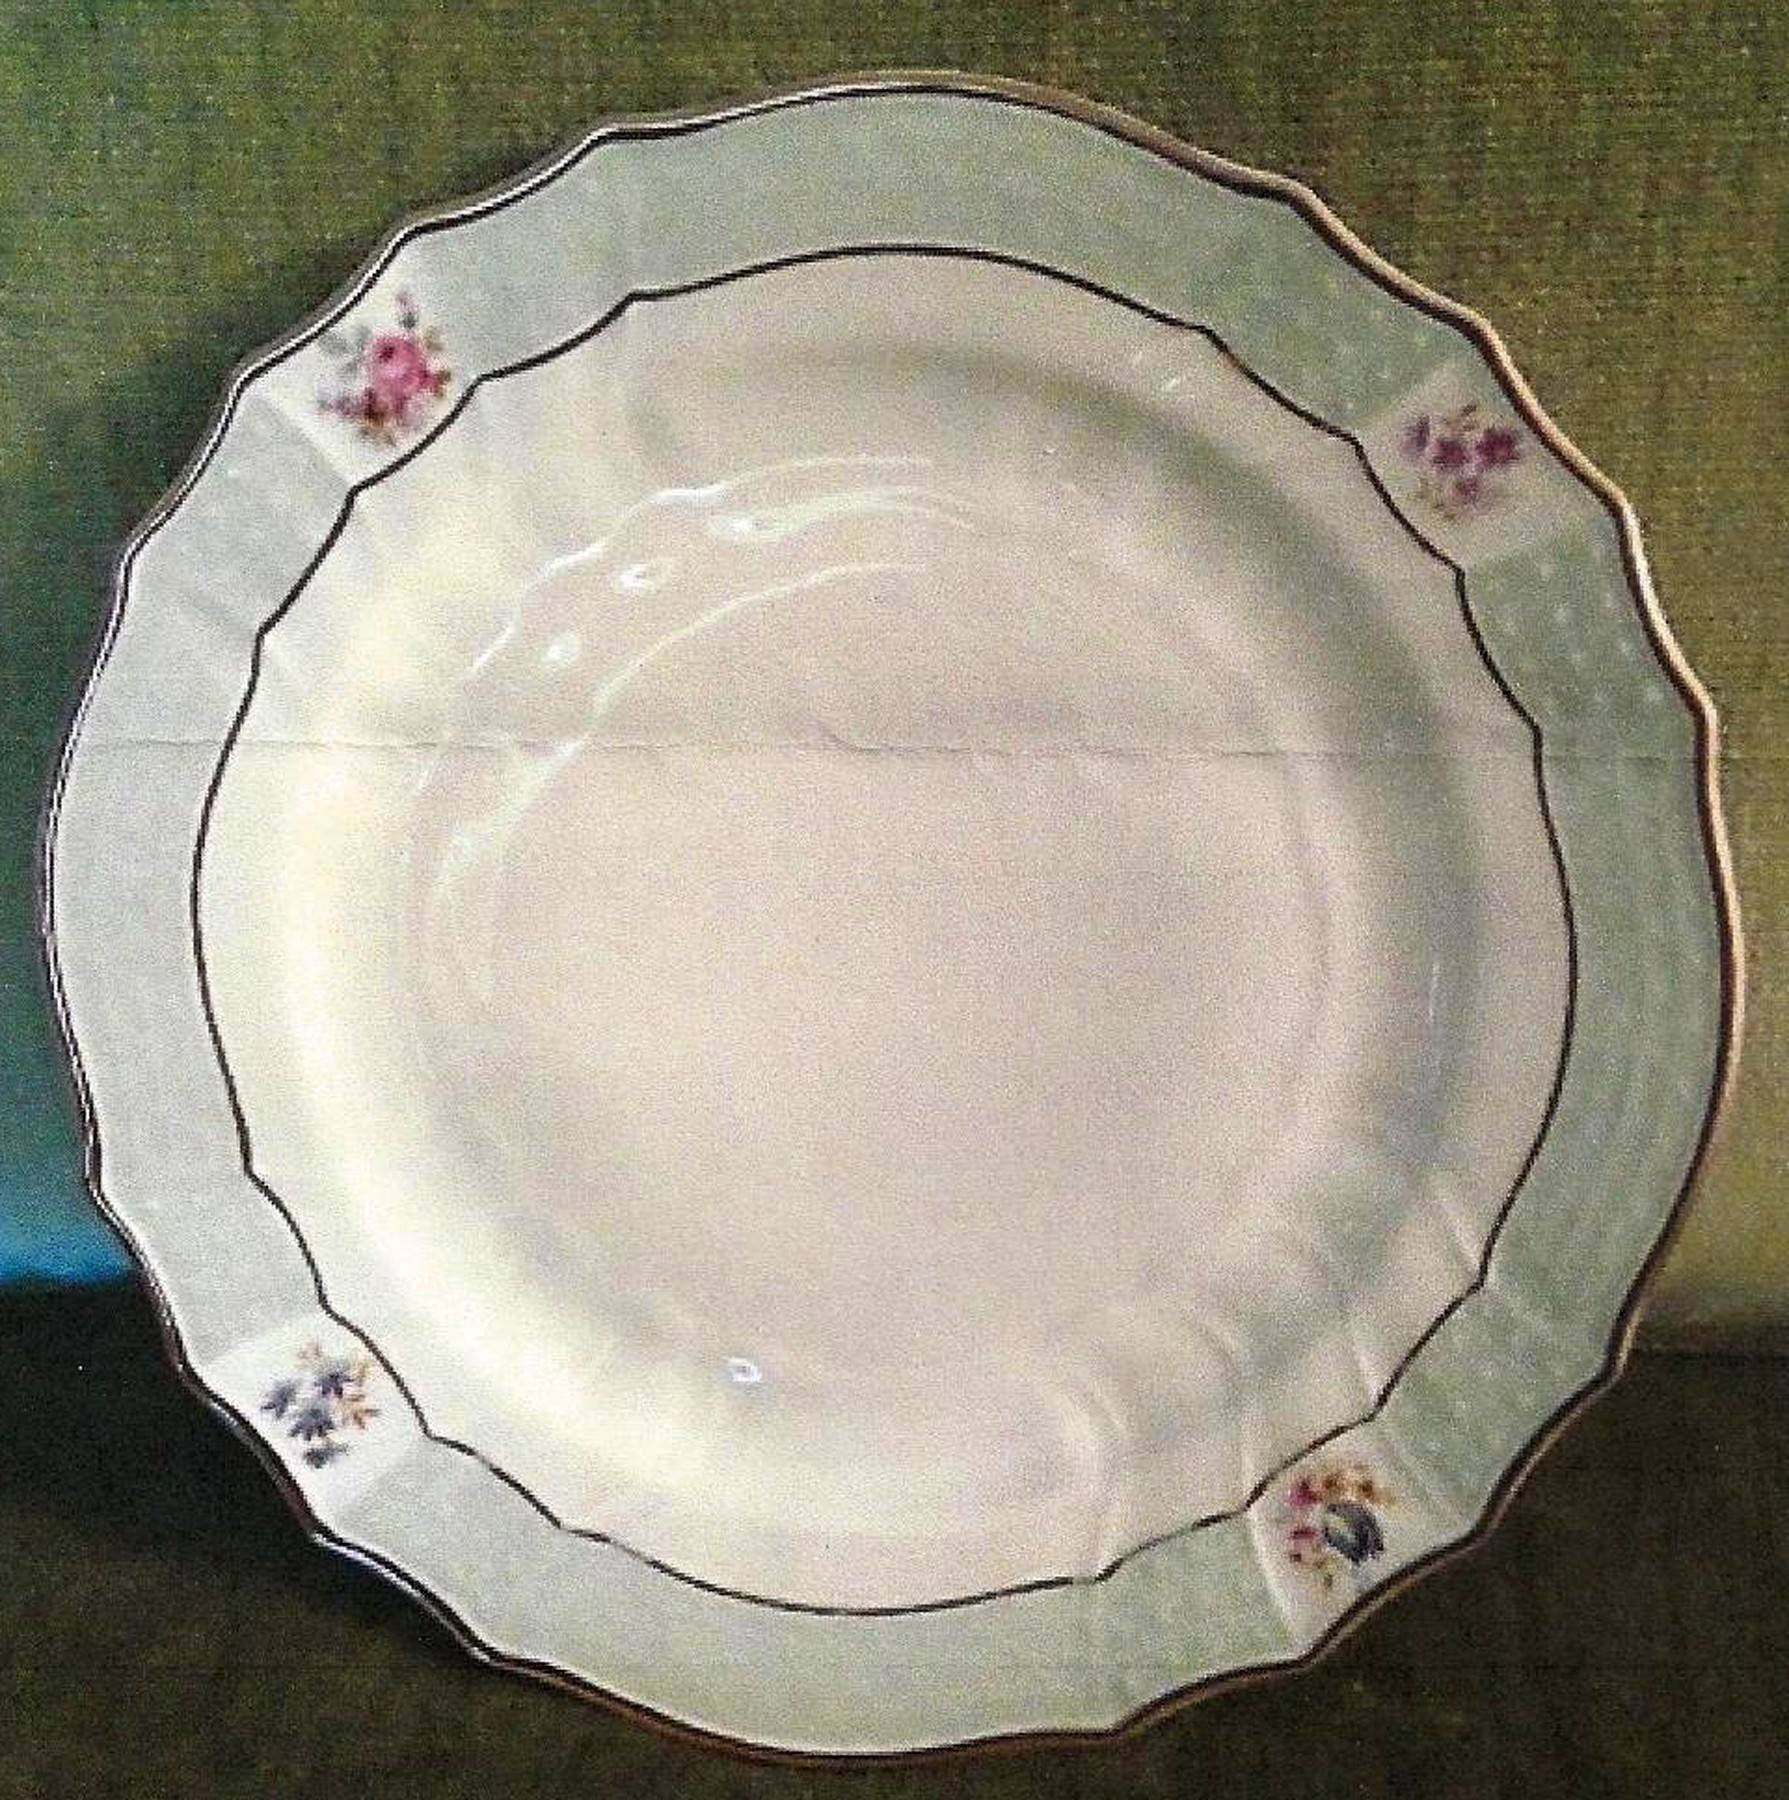 & Porcelain dinnerware was made in Germany